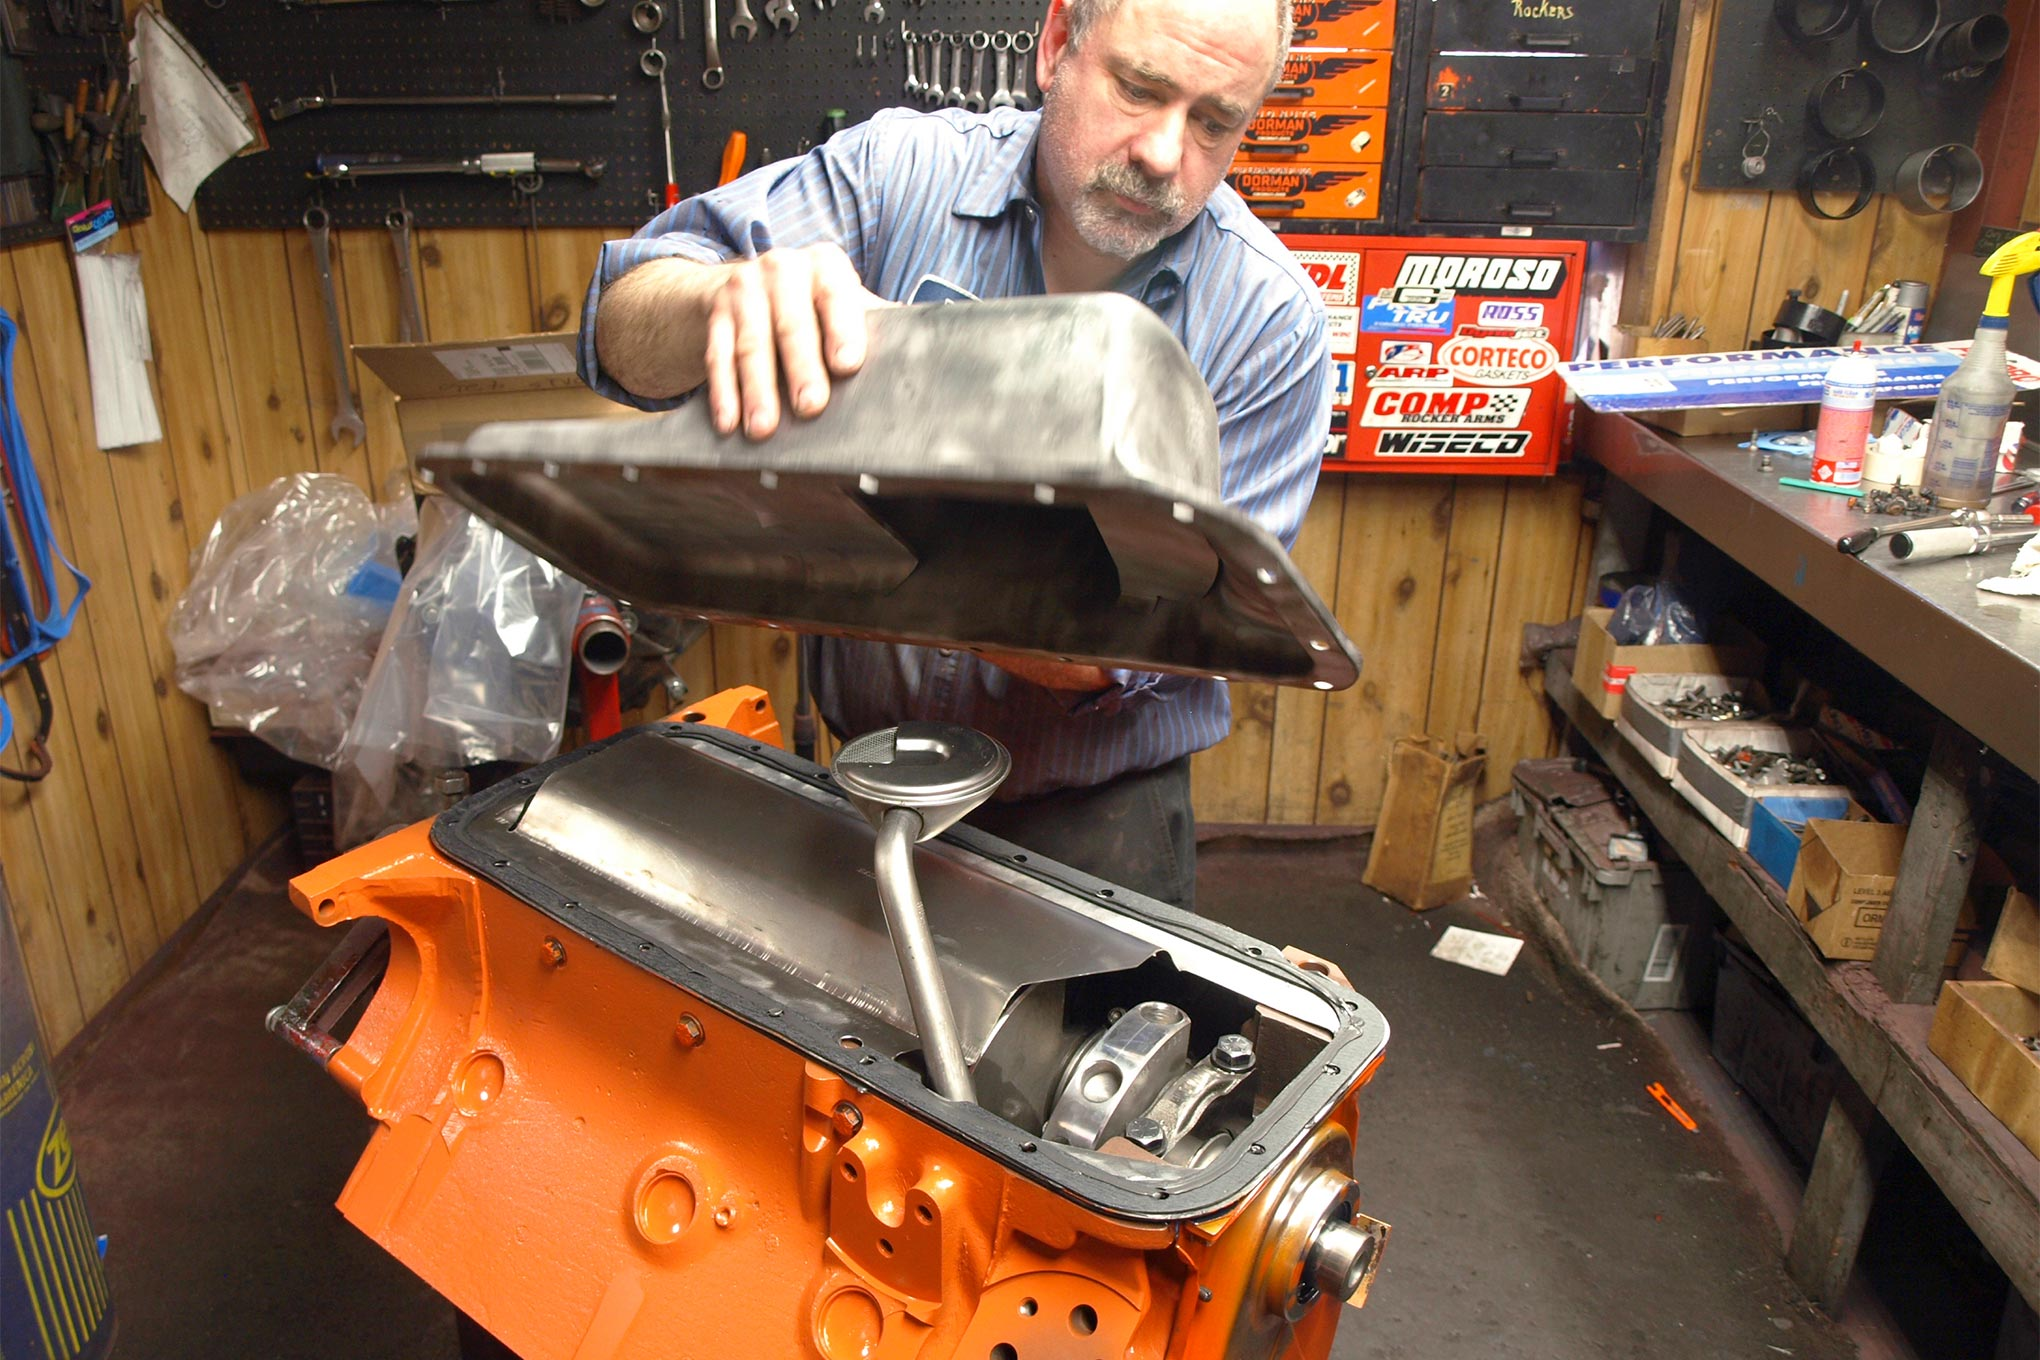 In keeping with the resto vibe of the Hemi 'Cuda clone host, R.A.D. reused the crate engine's oil pan (PN 4529884). At 6 quarts, it's a full quart larger than a 383 or 440 unit and is a copy of a Street Hemi unit, right down to its anti-slosh baffles. The 1/2-inch oil pickup tube (PN 4529567) and windage tray (PN 4120998) are also standard-issue Street Hemi goodies.